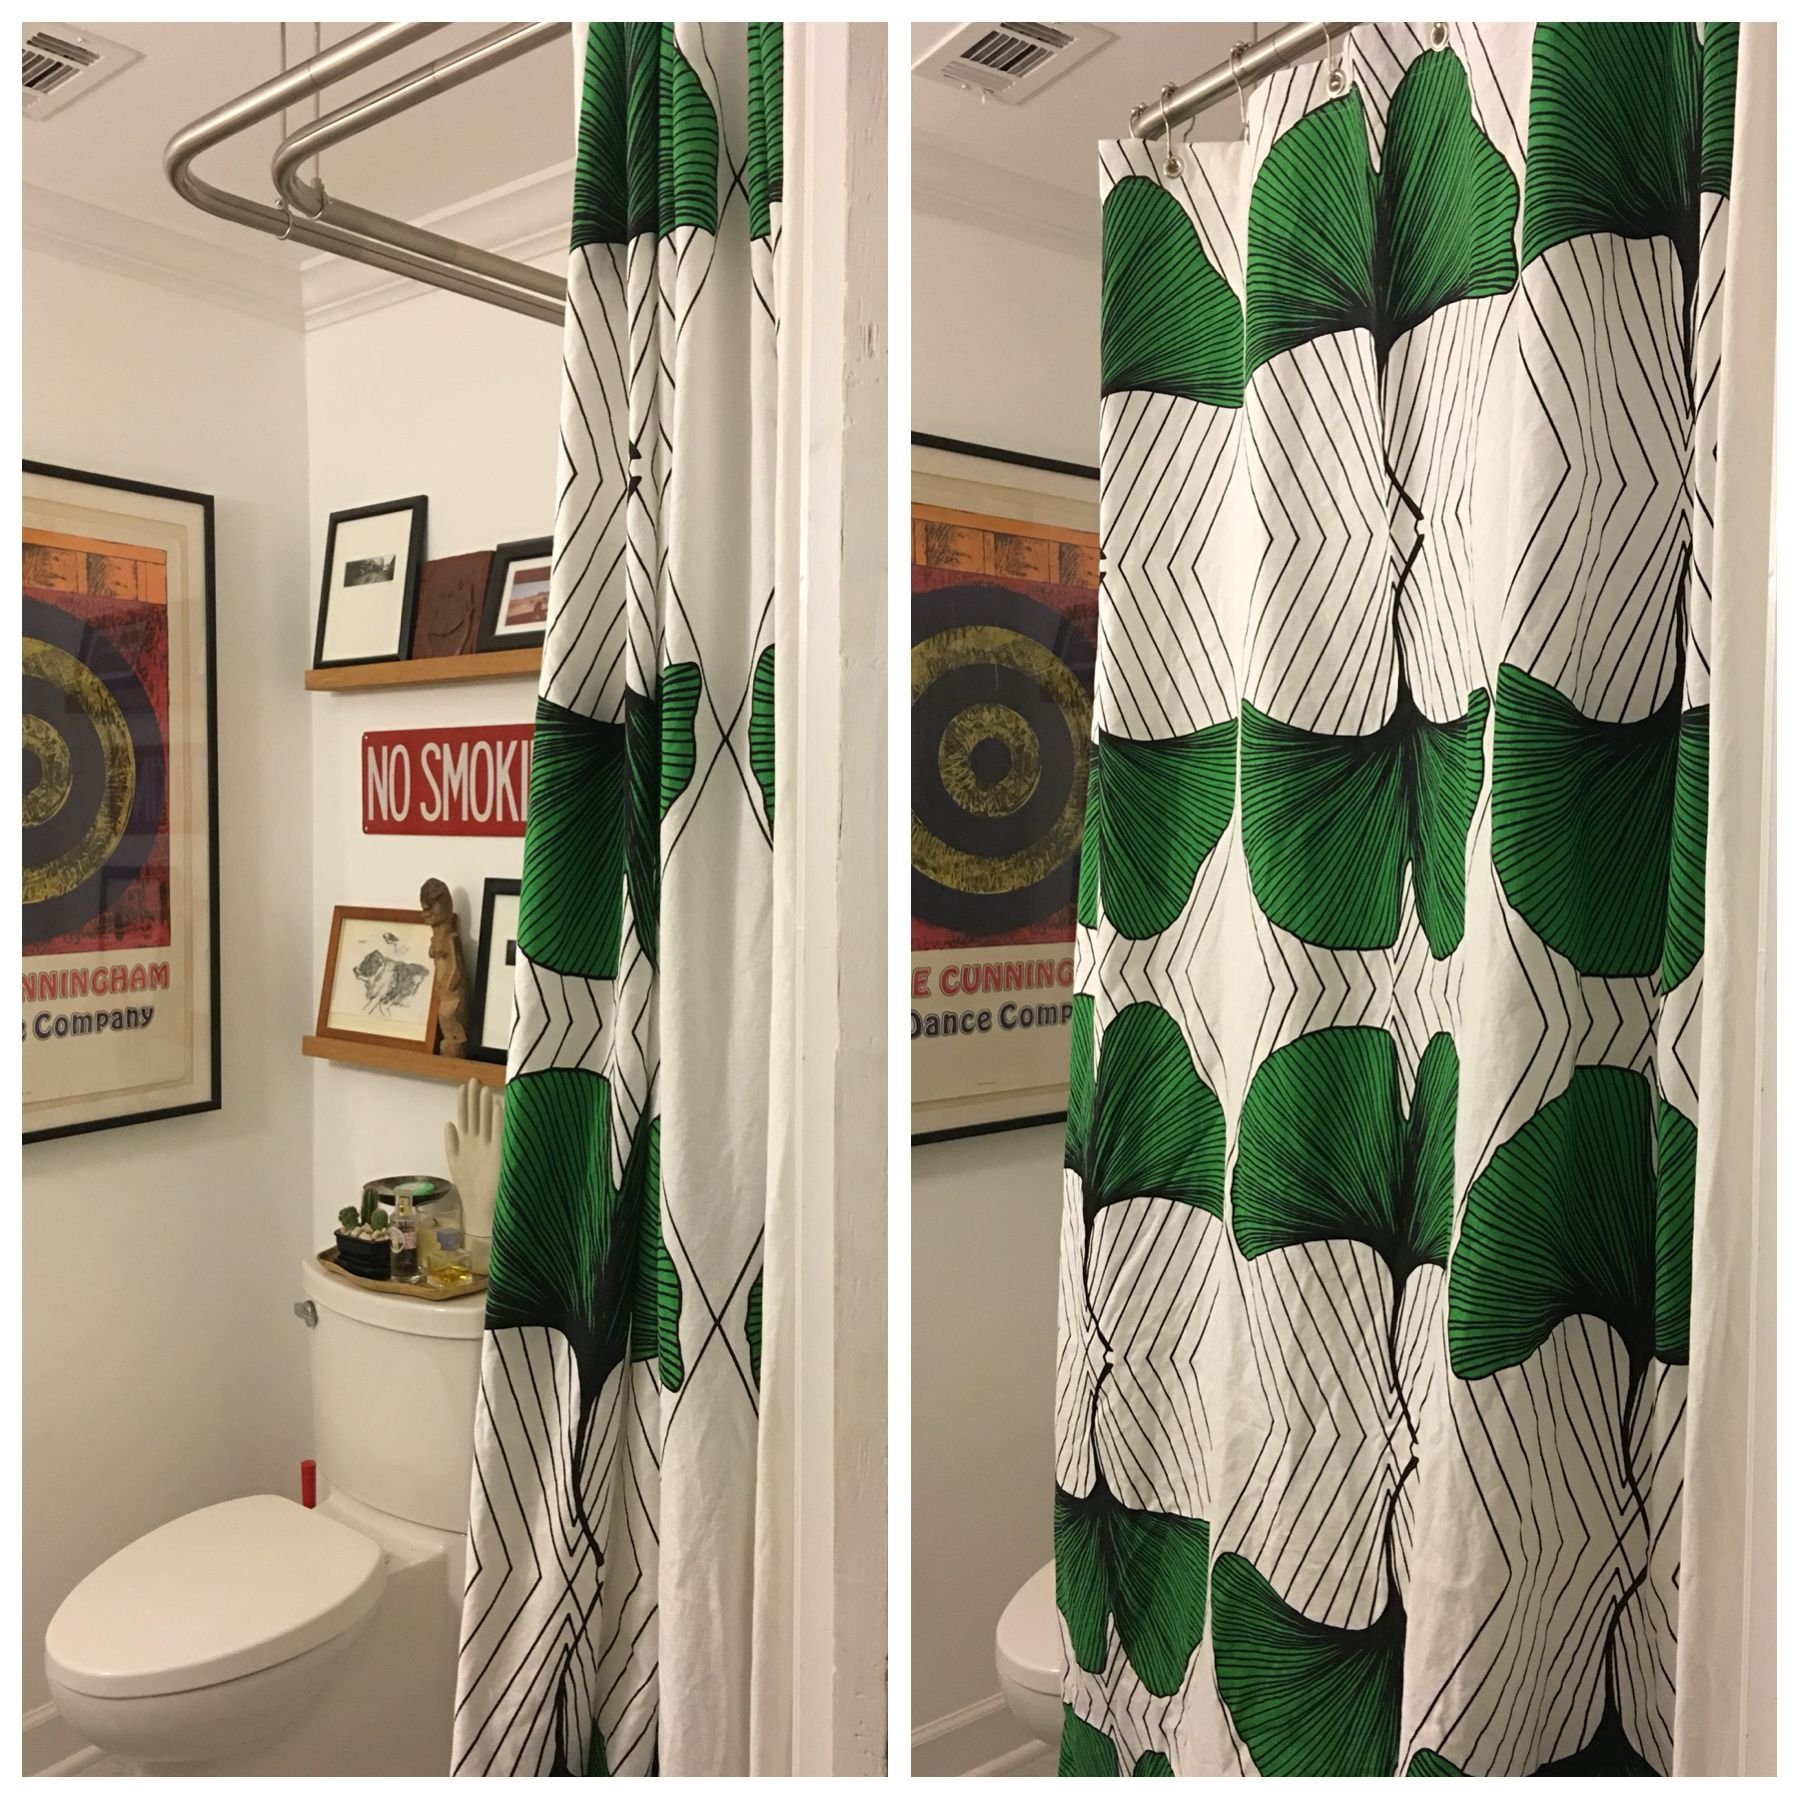 So Happy About My DIY ANVÄNDBAR Shower Curtain And Corner Rod. Saved  Zillions Over Glass